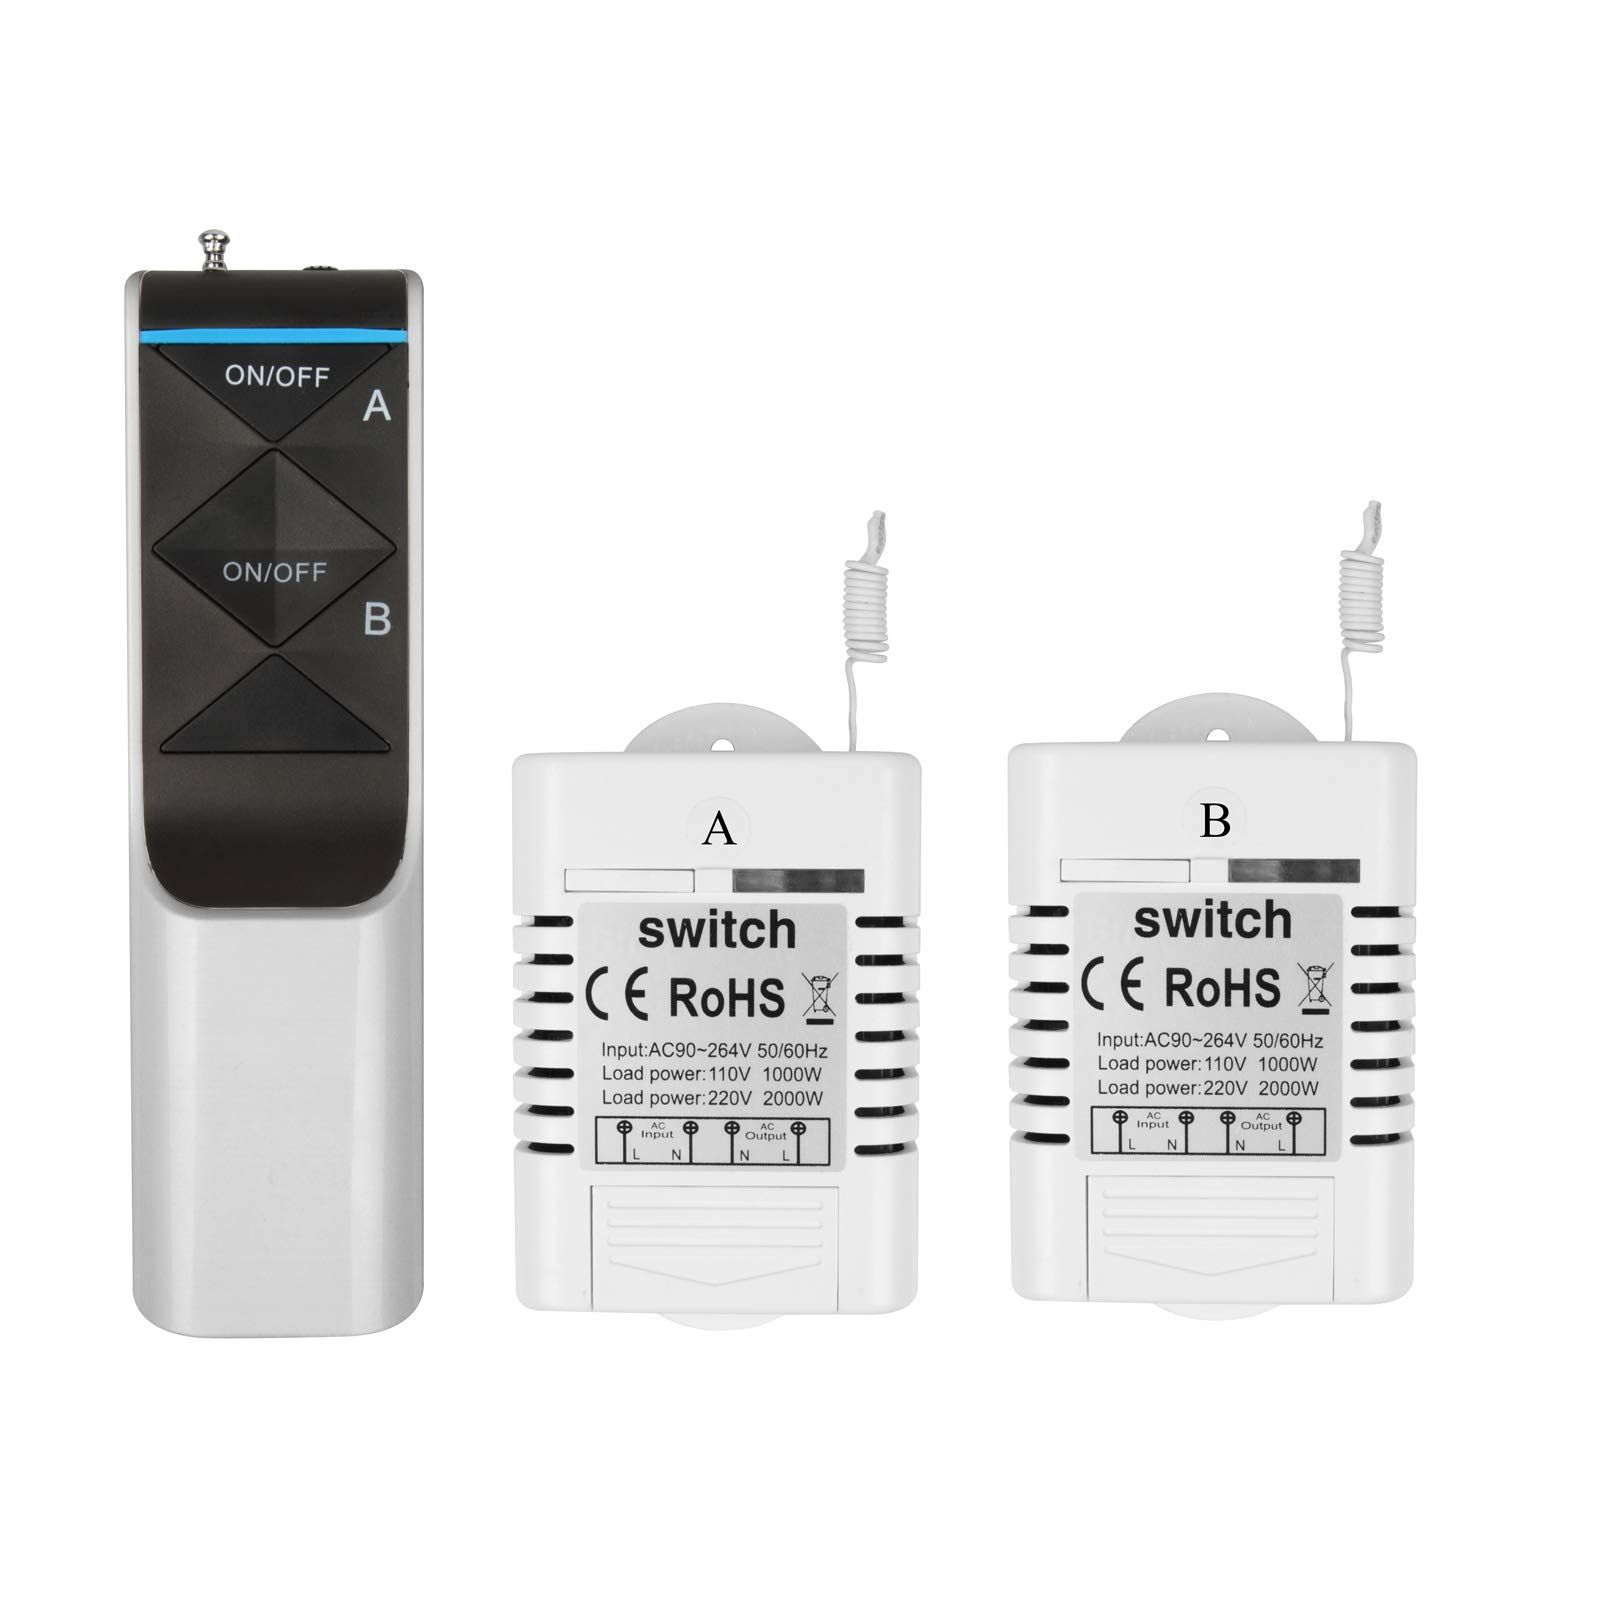 small resolution of heneng wireless light switch remote controlled no wiring no battery outdoor 1300 ft indoors 230 ft